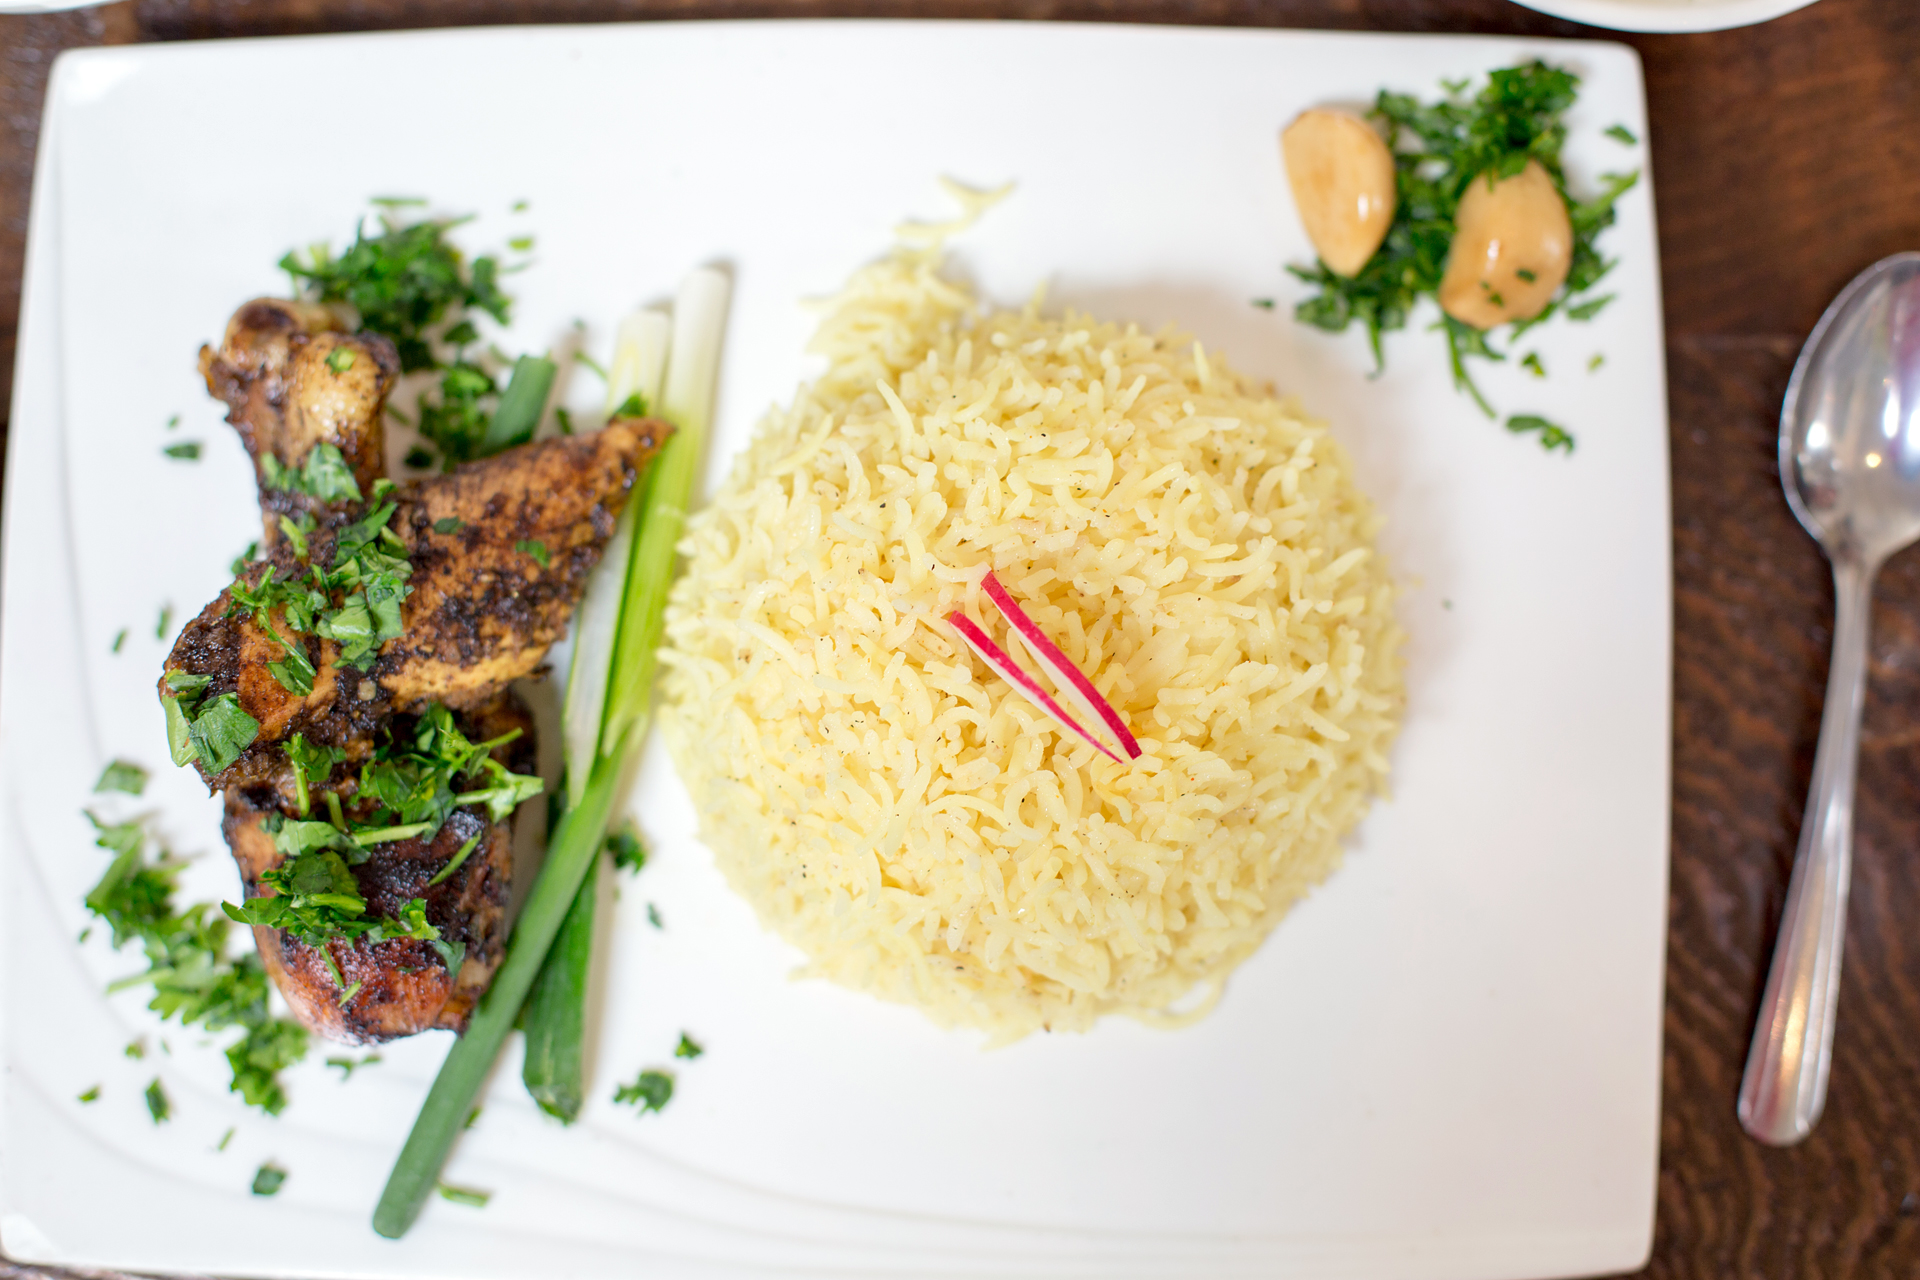 Komaaj serves turmeric rice with roasted chicken marinated in sour orange molasses, mountain cumin and Persian hogweed.